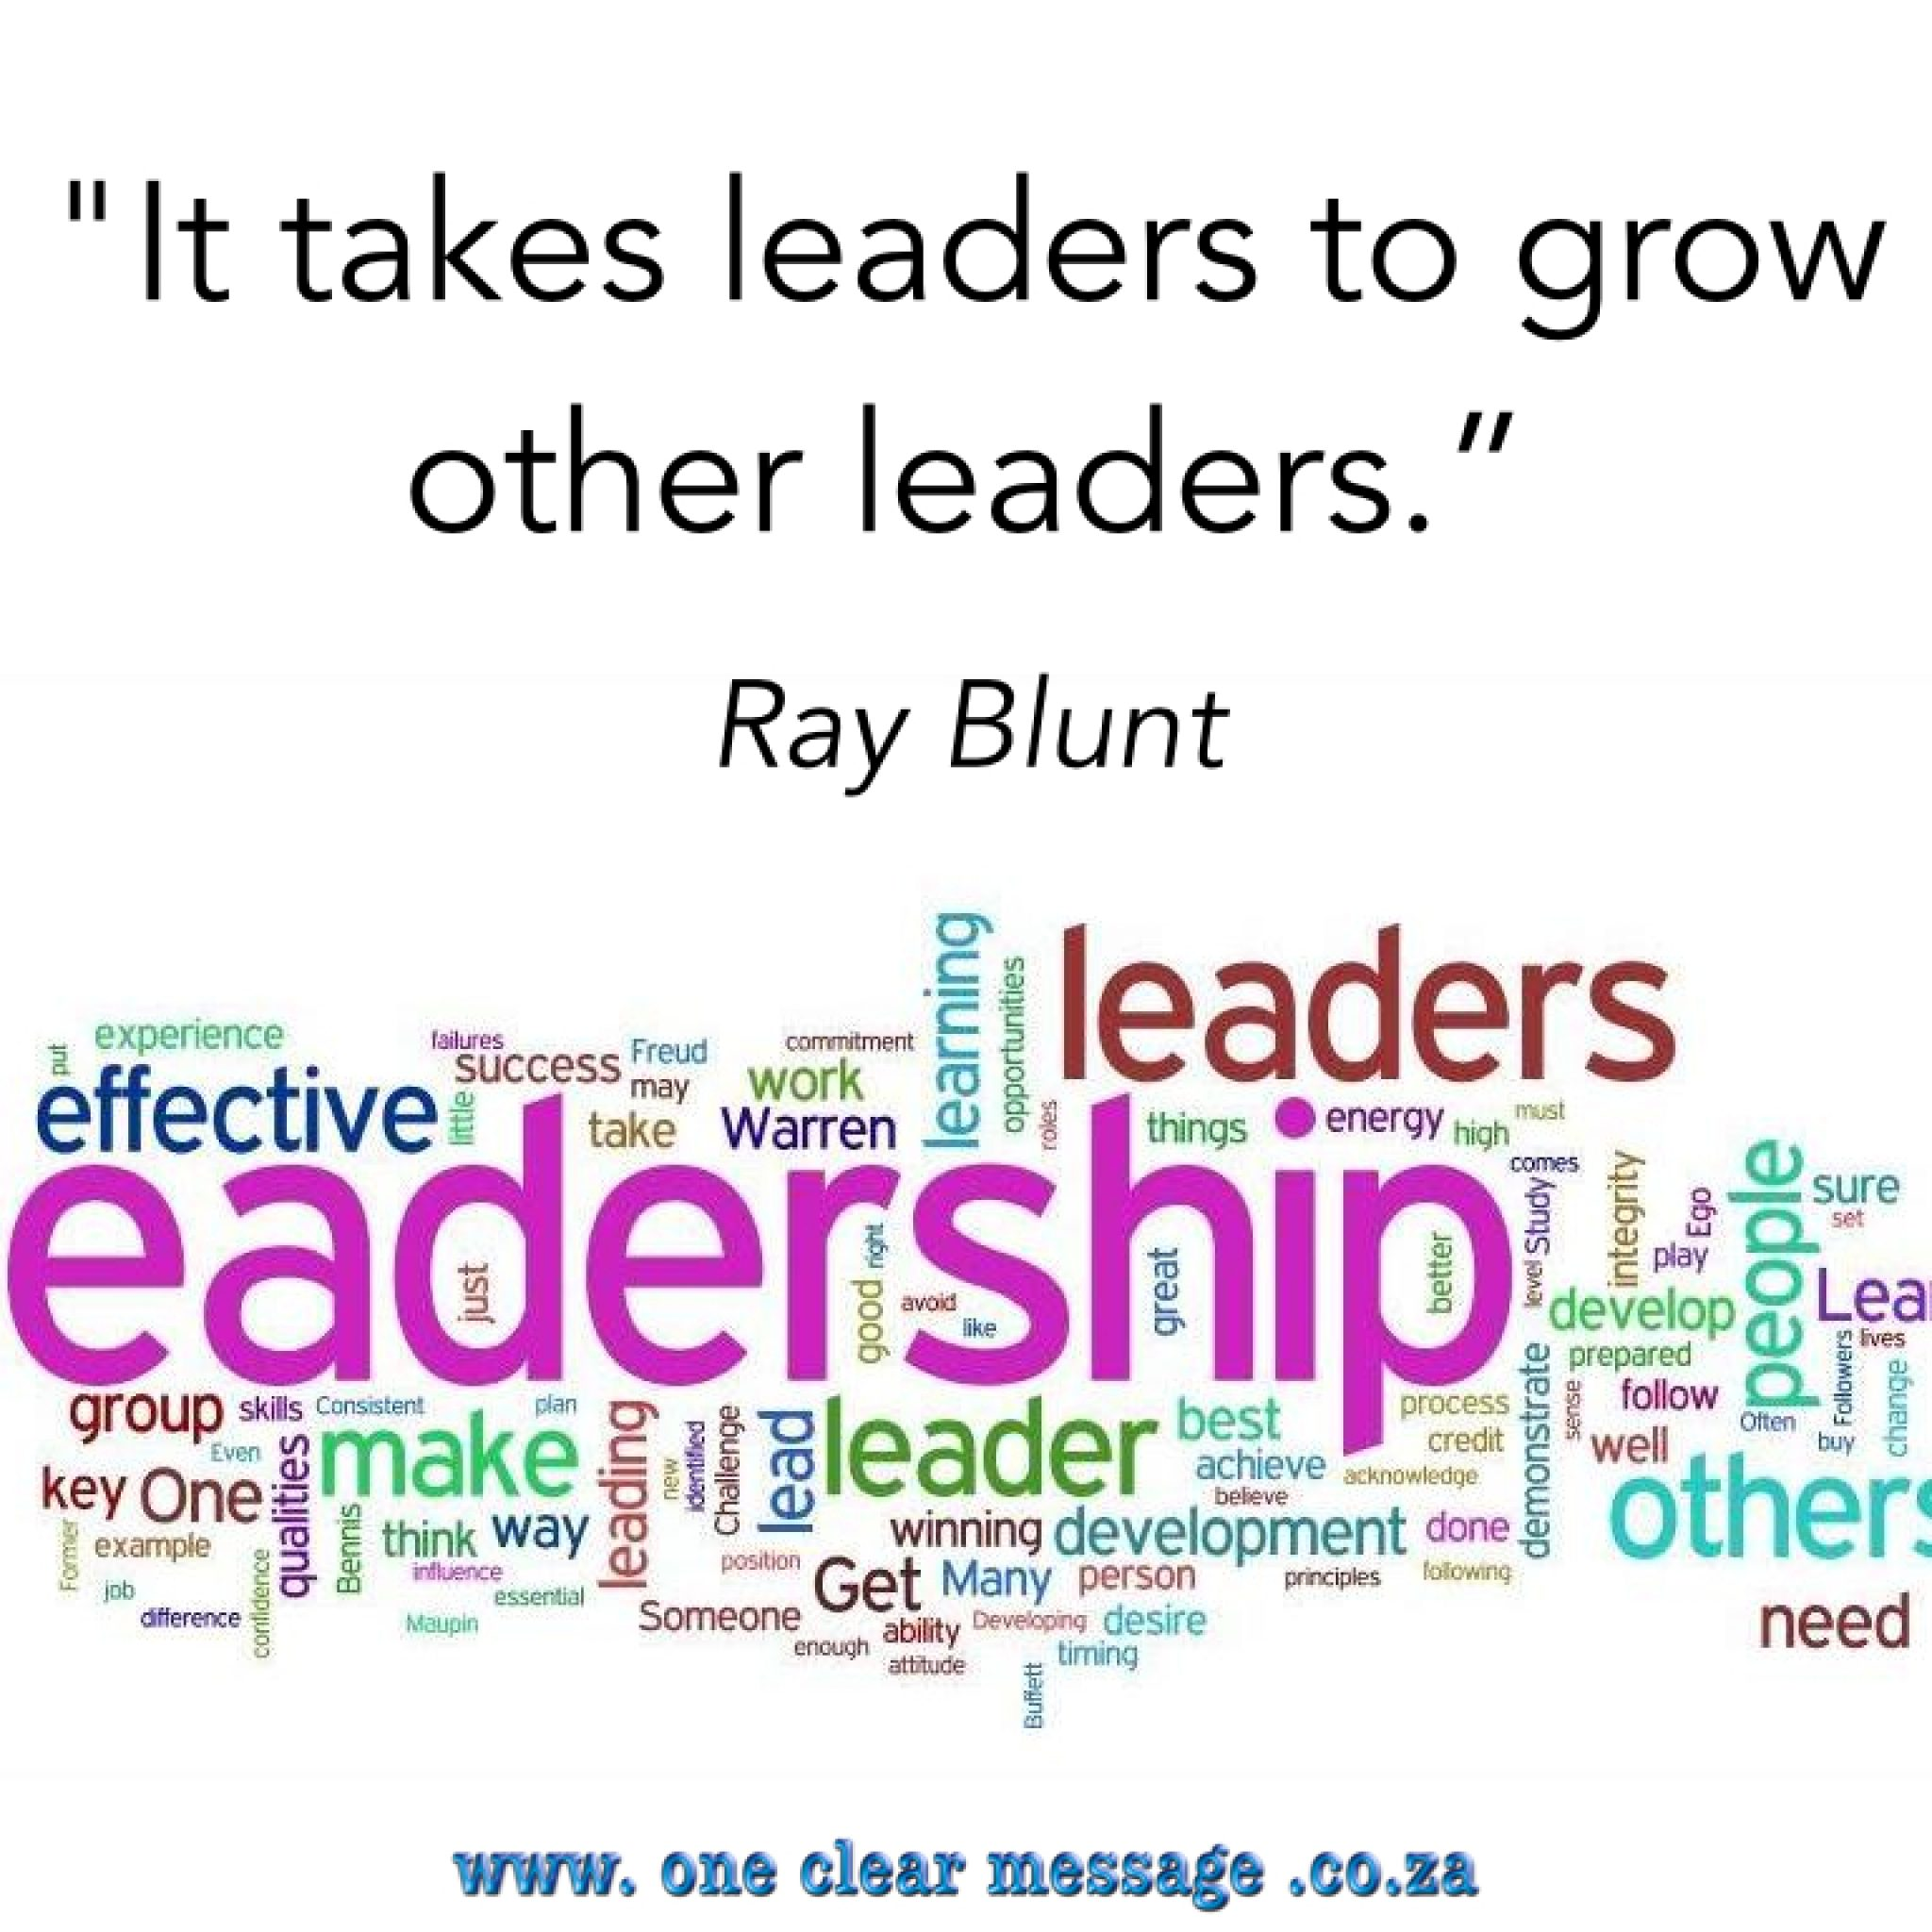 It takes leaders to grow other leaders